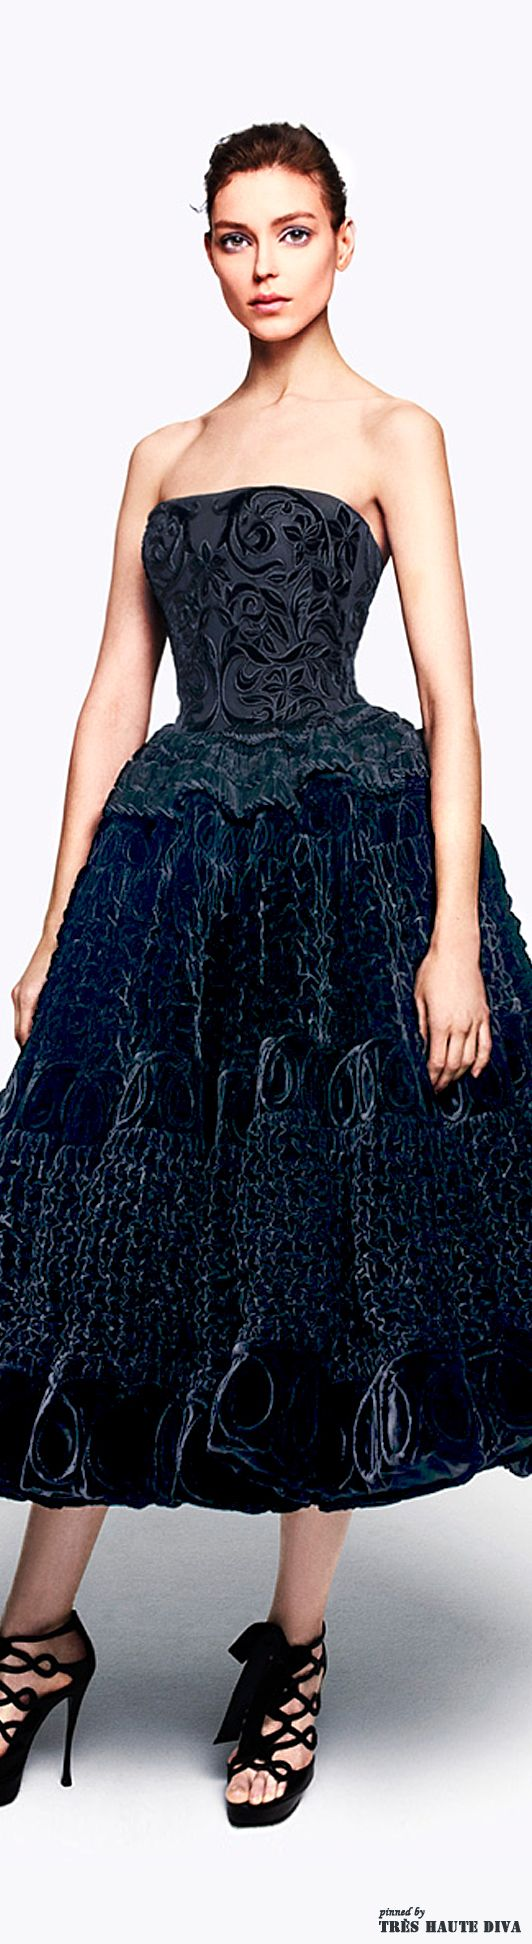 Alexander McQueen Pre-Fall | Keep The Glamour ♡ ✤ LadyLuxury ✤